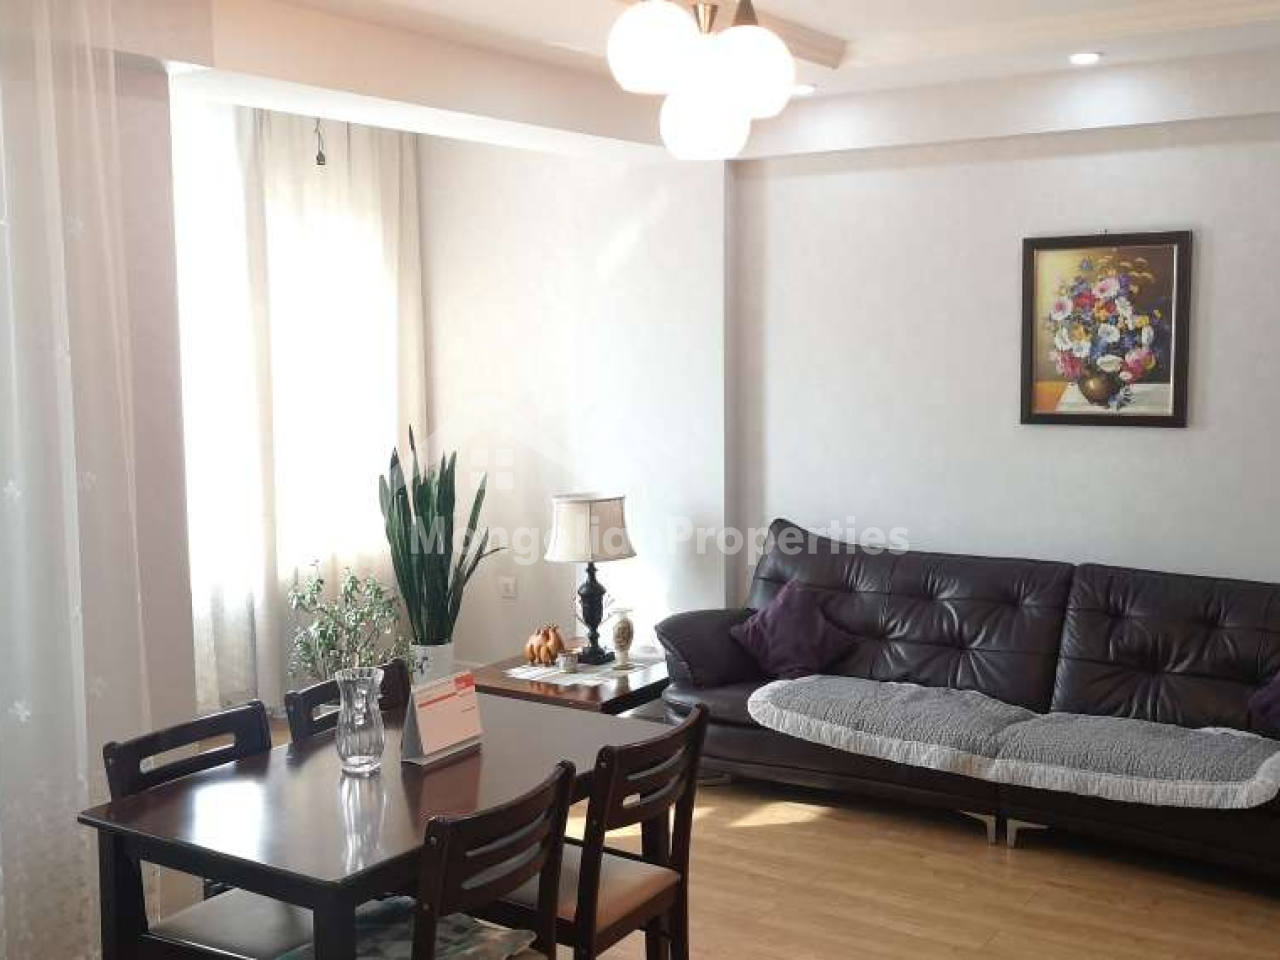 For Rent:One bedroom apartment in Khan-Uul district